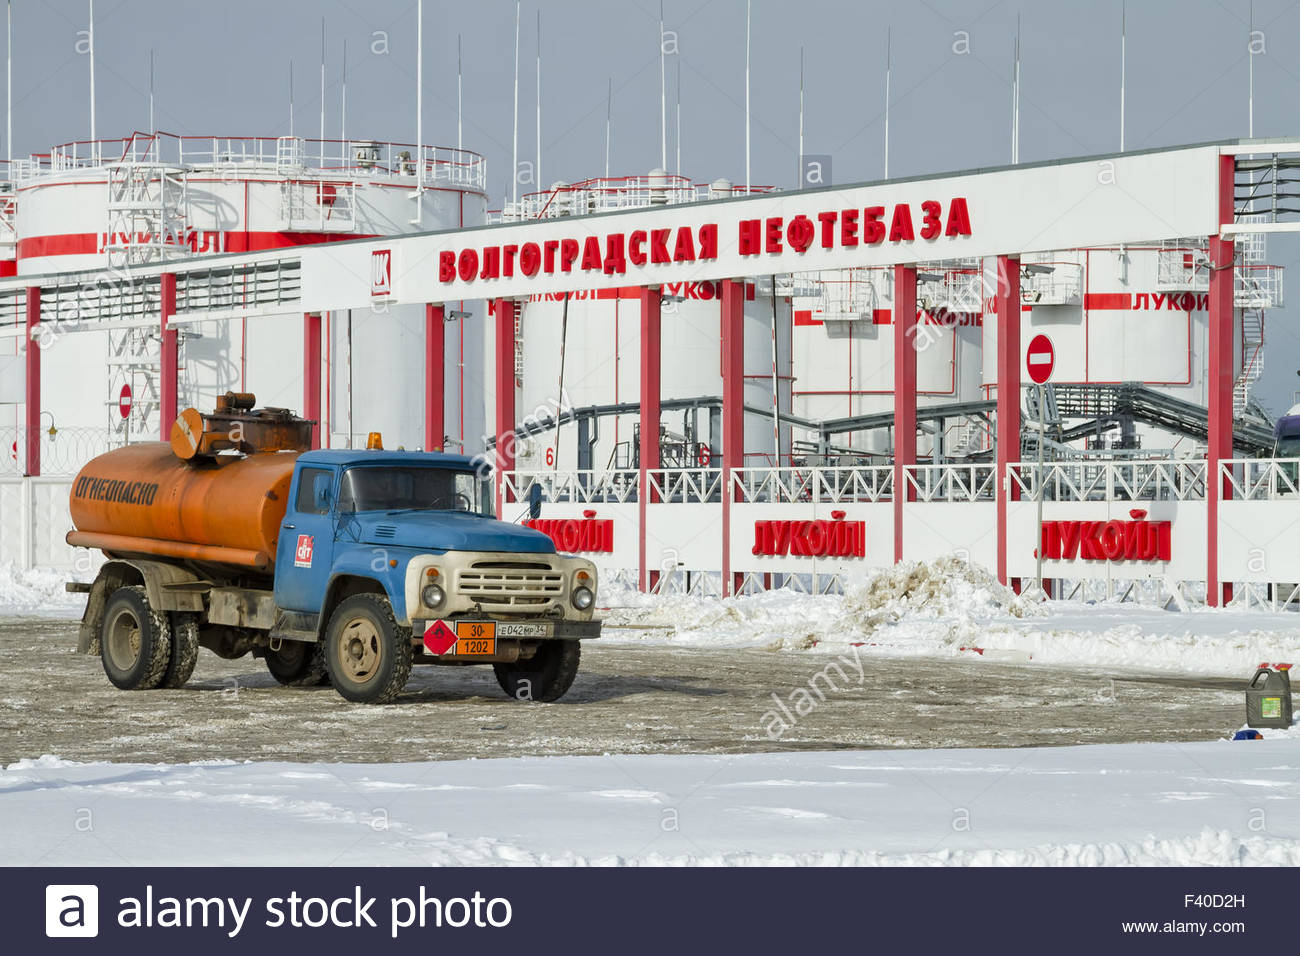 Russian truck stands amid tank farms - Stock Image